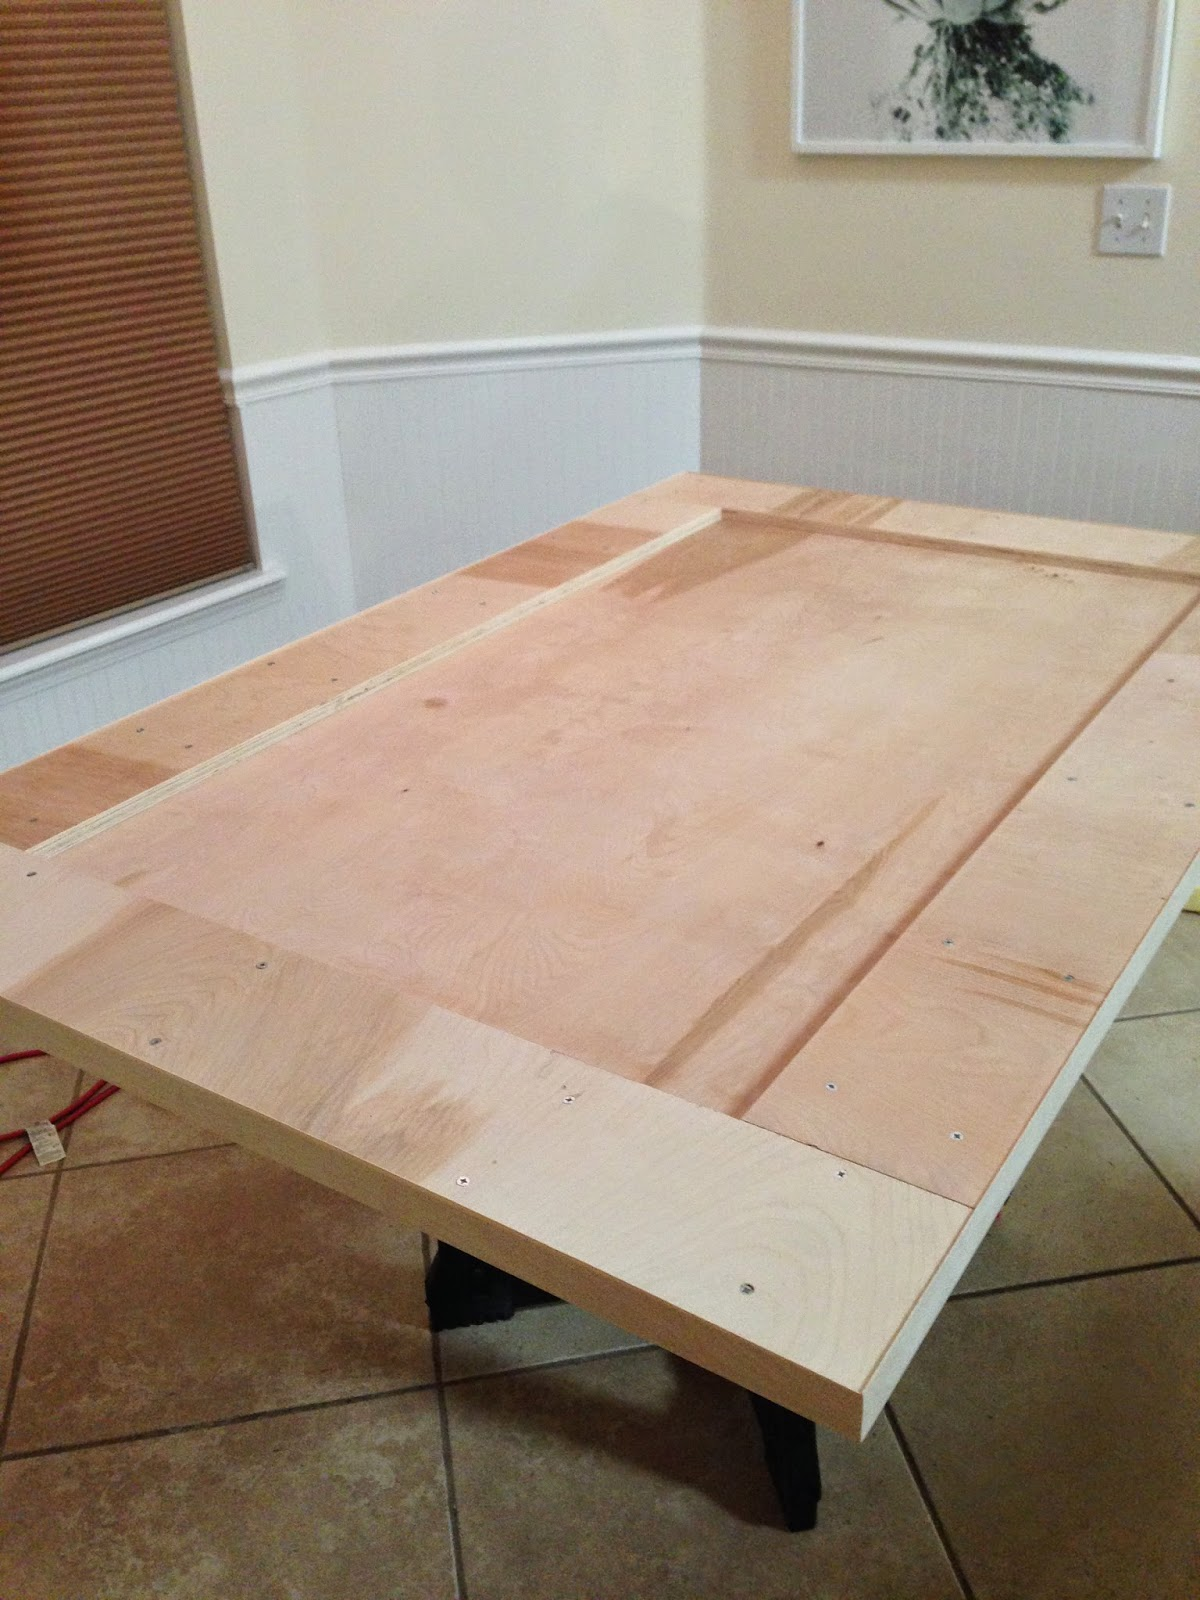 Of Course By Layering Two Pieces Of Wood Like That, It Was Obvious On The  Sides That It Wasnu0027t All One Thick Piece Of Wood. Plus Plywood Has A Really  Rough, ...